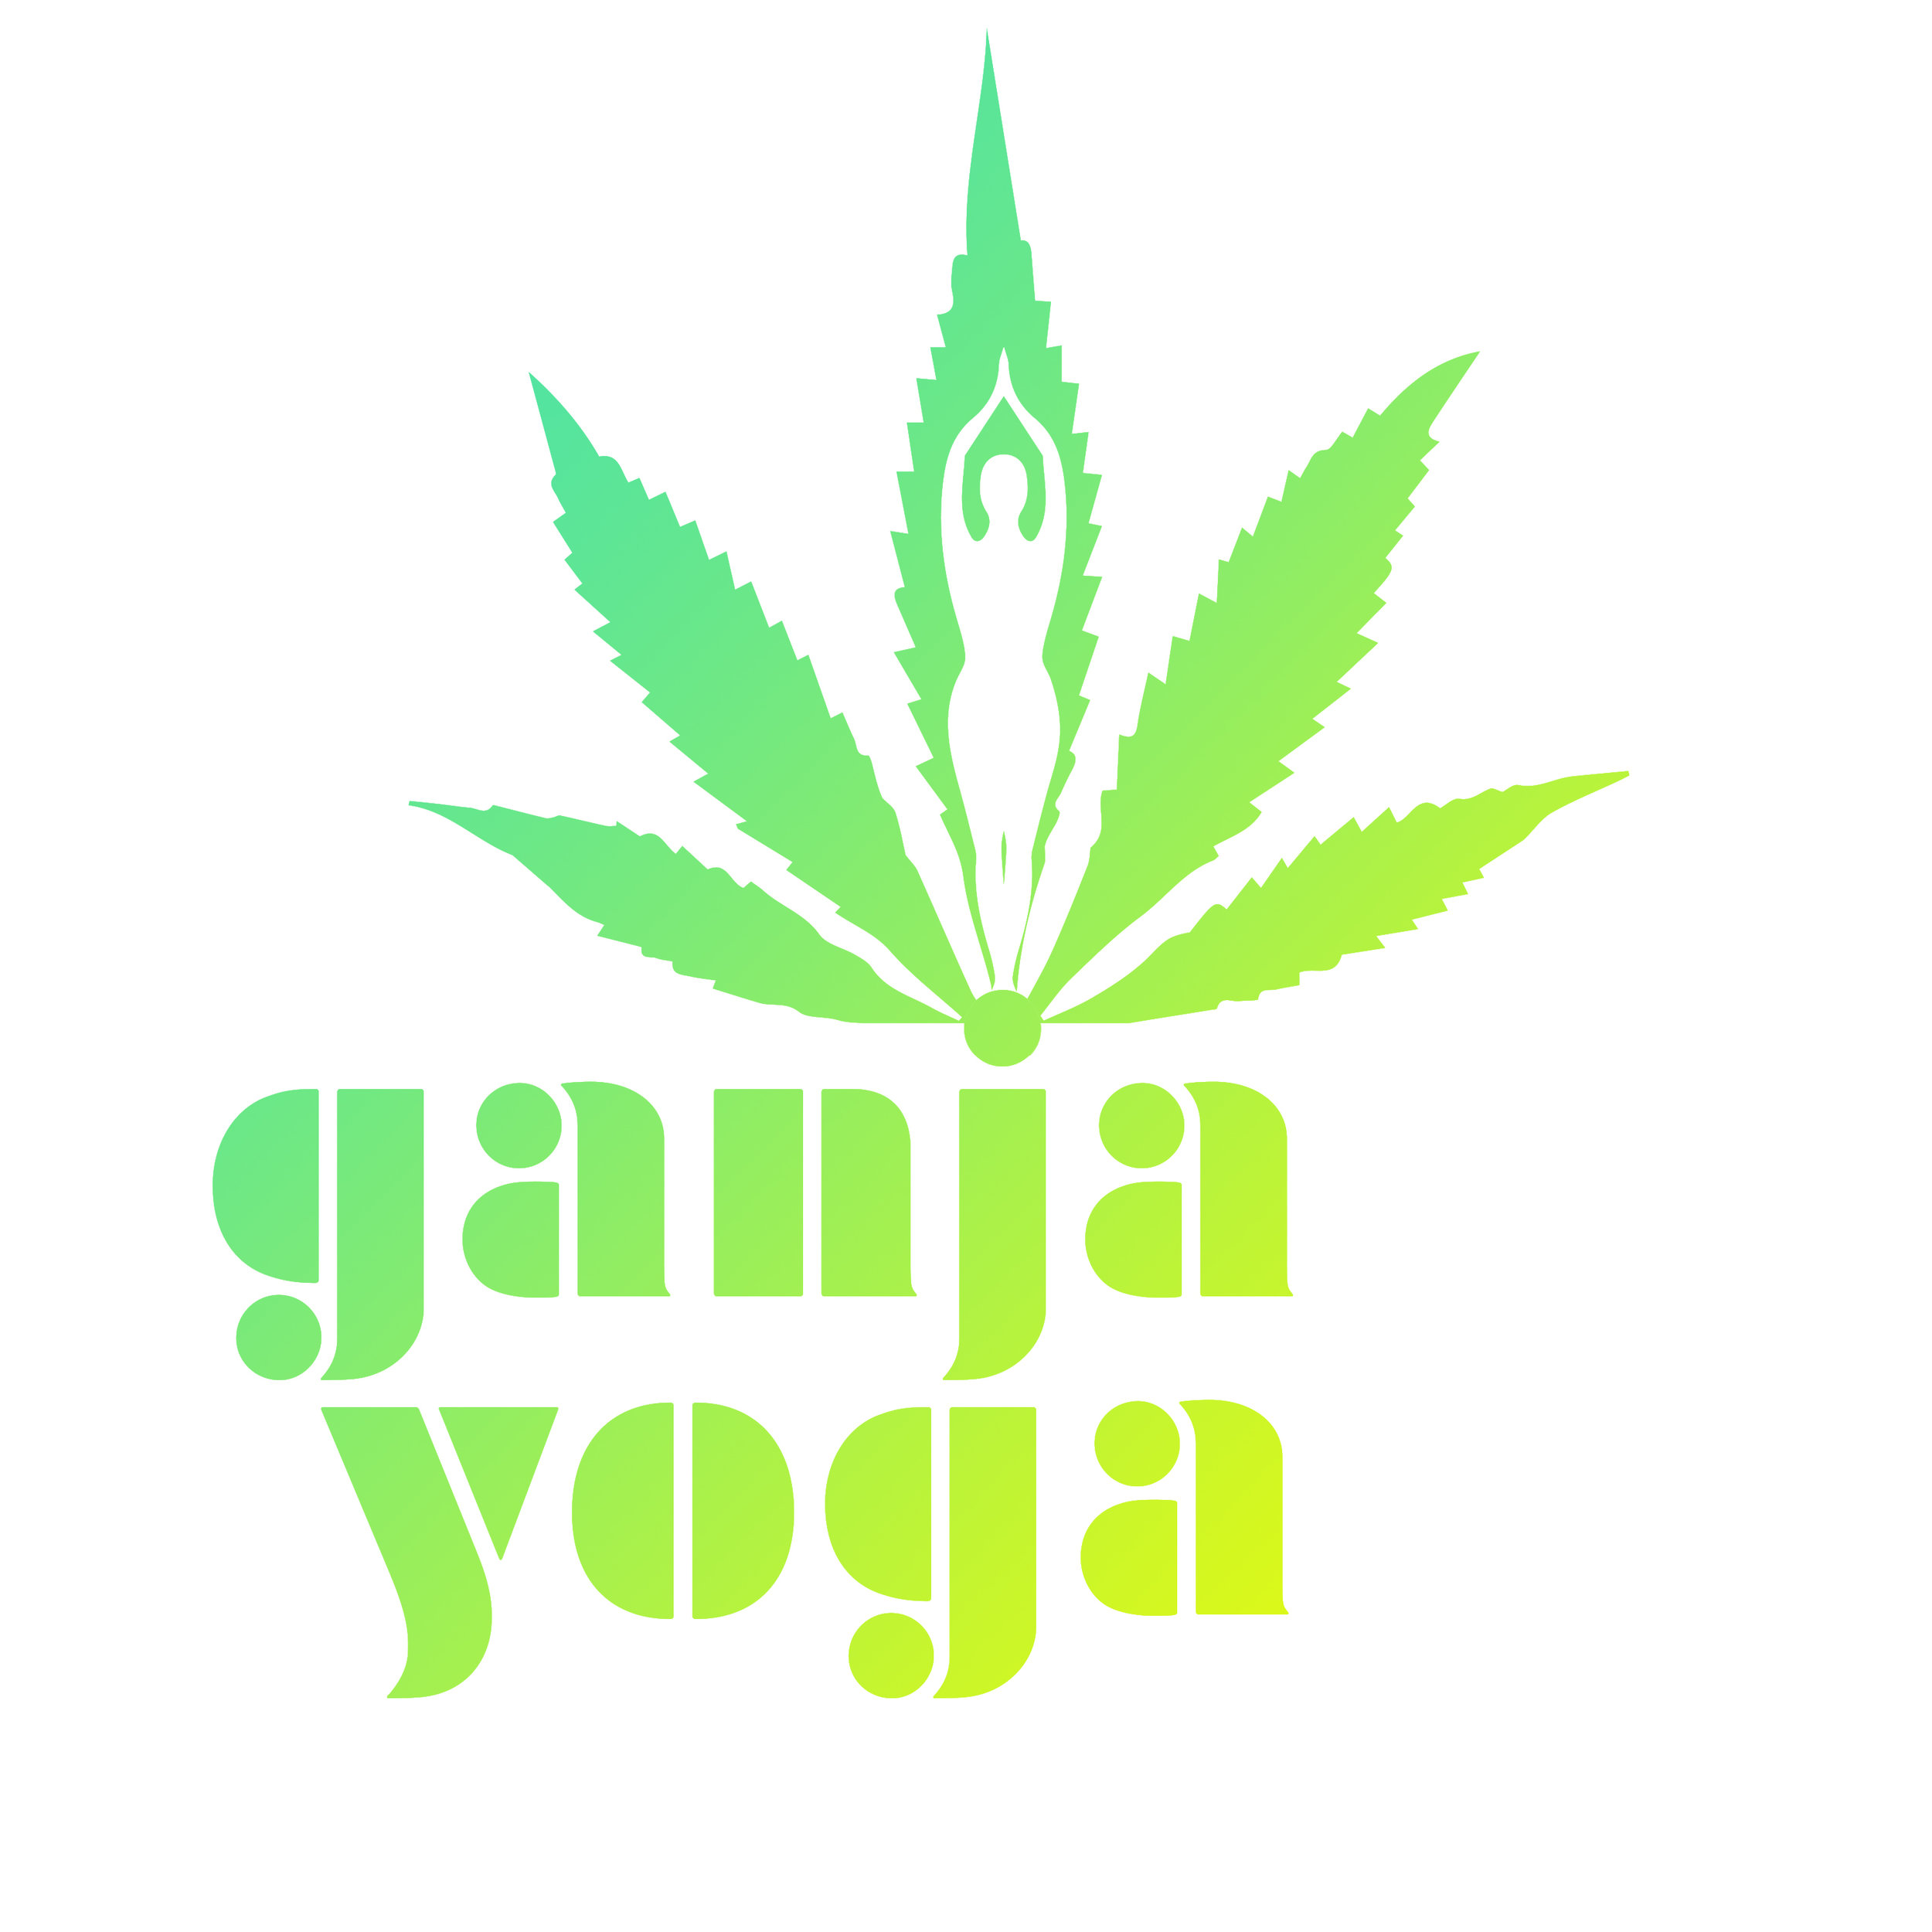 Ganja Yoga is a cannabis-enhanced practice, designed for relaxation, well-being, and community.  Founded by Dee Dussault, Ganja Yoga was the first company to offer enhanced yoga practice, and has pioneered the movement since 2009.  This summer is Ganja Yoga's ten year anniversary!!!!   The all-levels, slow-flow vibe of Ganja Yoga supports any body interested in exploring yoga with cannabis.  Arrive between 11:30-12 enhance.Yoga starts at 12pm.  BYO cannabis to share.  Note: Consumption of cannabis is not necessary and CBD (non-psychoactive) products are available. This class is 21+ only and we'll be checking IDs so please bring!